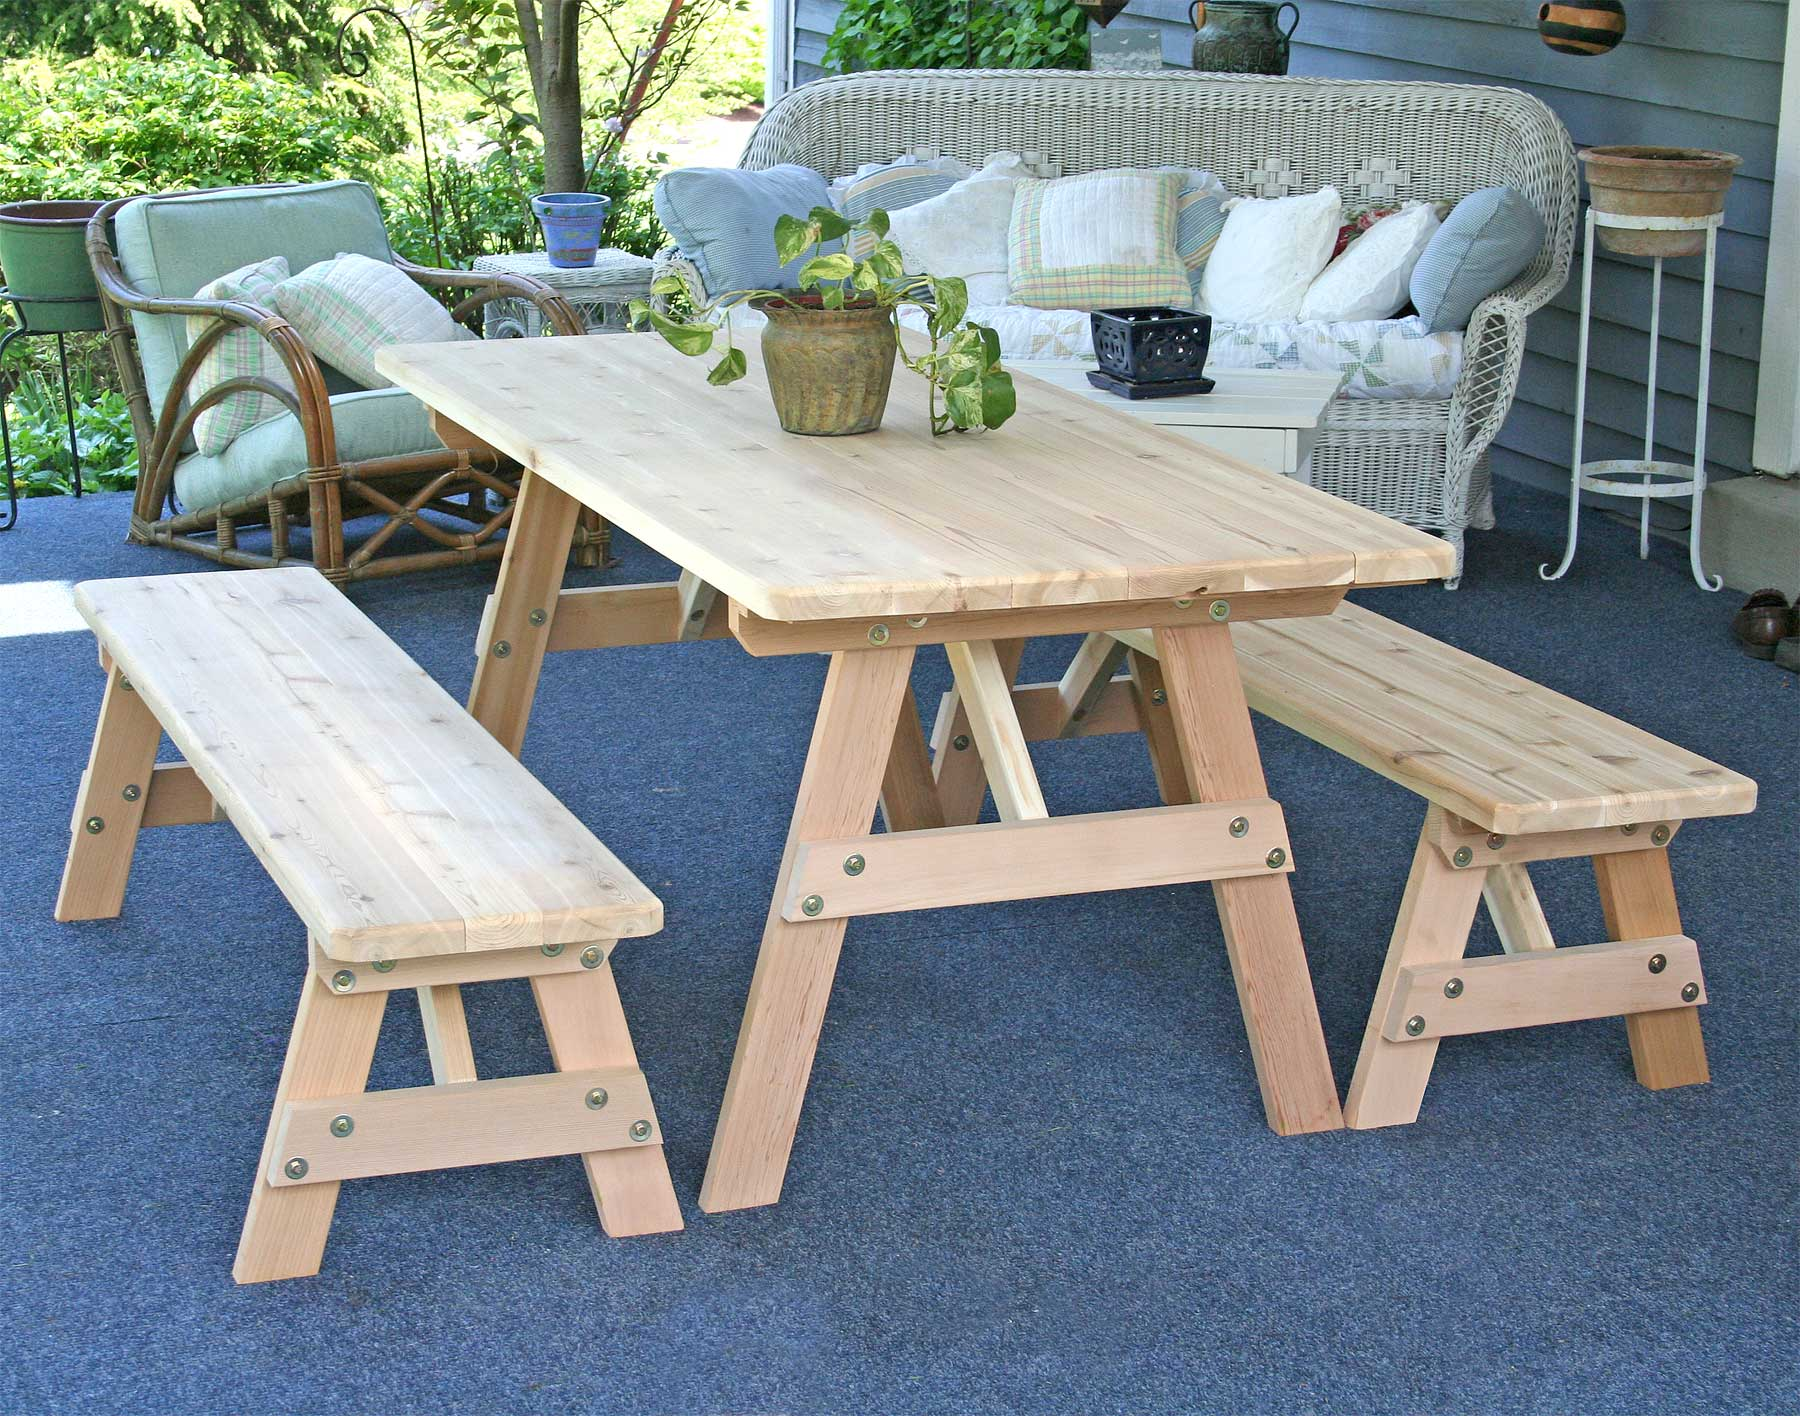 Weekend DIY Picnic Table Project - DIYdiva